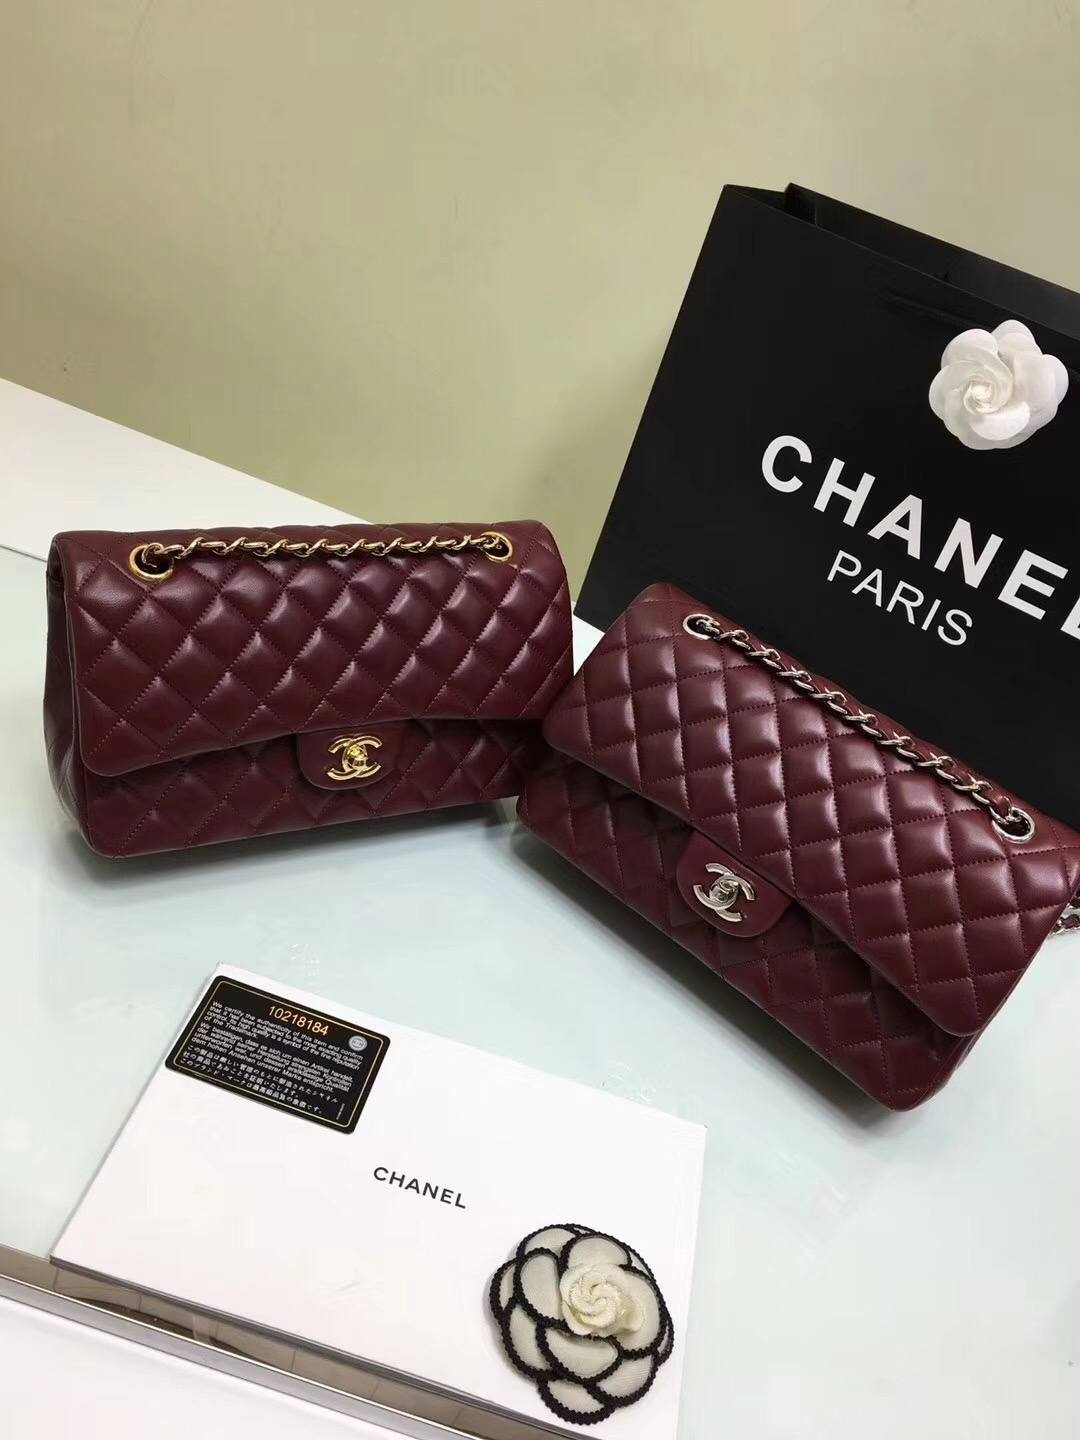 dbafd627d88 If you have limit budget for your favorable Chanel handbags, we would like  to recommend one excellent online store Designer Bags for Less .